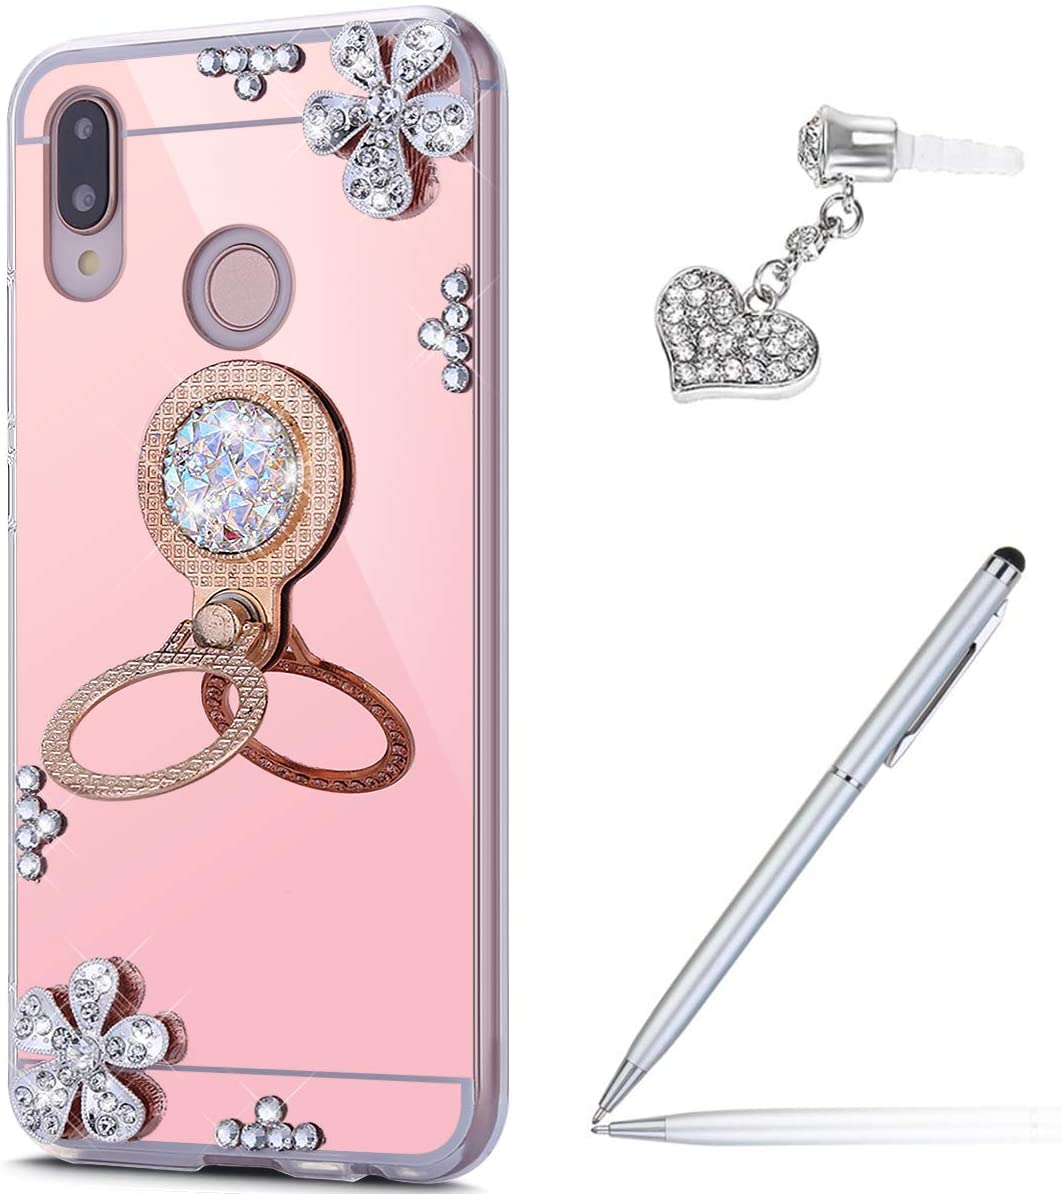 Case for Huawei P20 Lite Diamond Case,Crystal Inlaid diamond Flowers Rhinestone Diamond Glitter Bling Mirror Back TPU Case & Ring Stand + Touch Pen Dust Plug for Huawei P20 Lite Mirror Case,Rose Gold